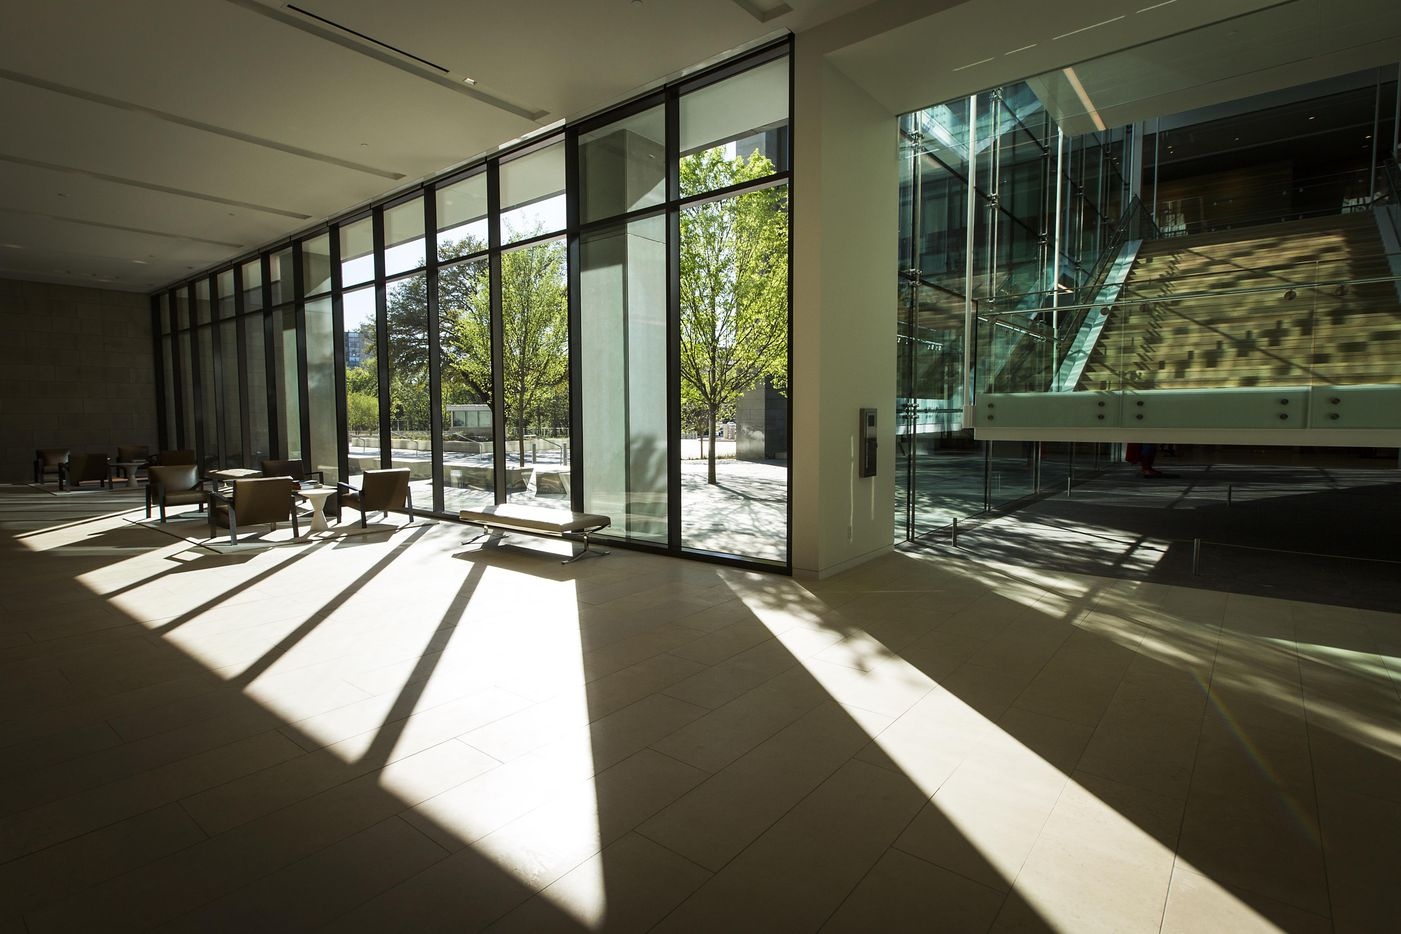 Sunlight streams into the lobby of the new headquarters for the Perot family overlooking Turtle Creek.